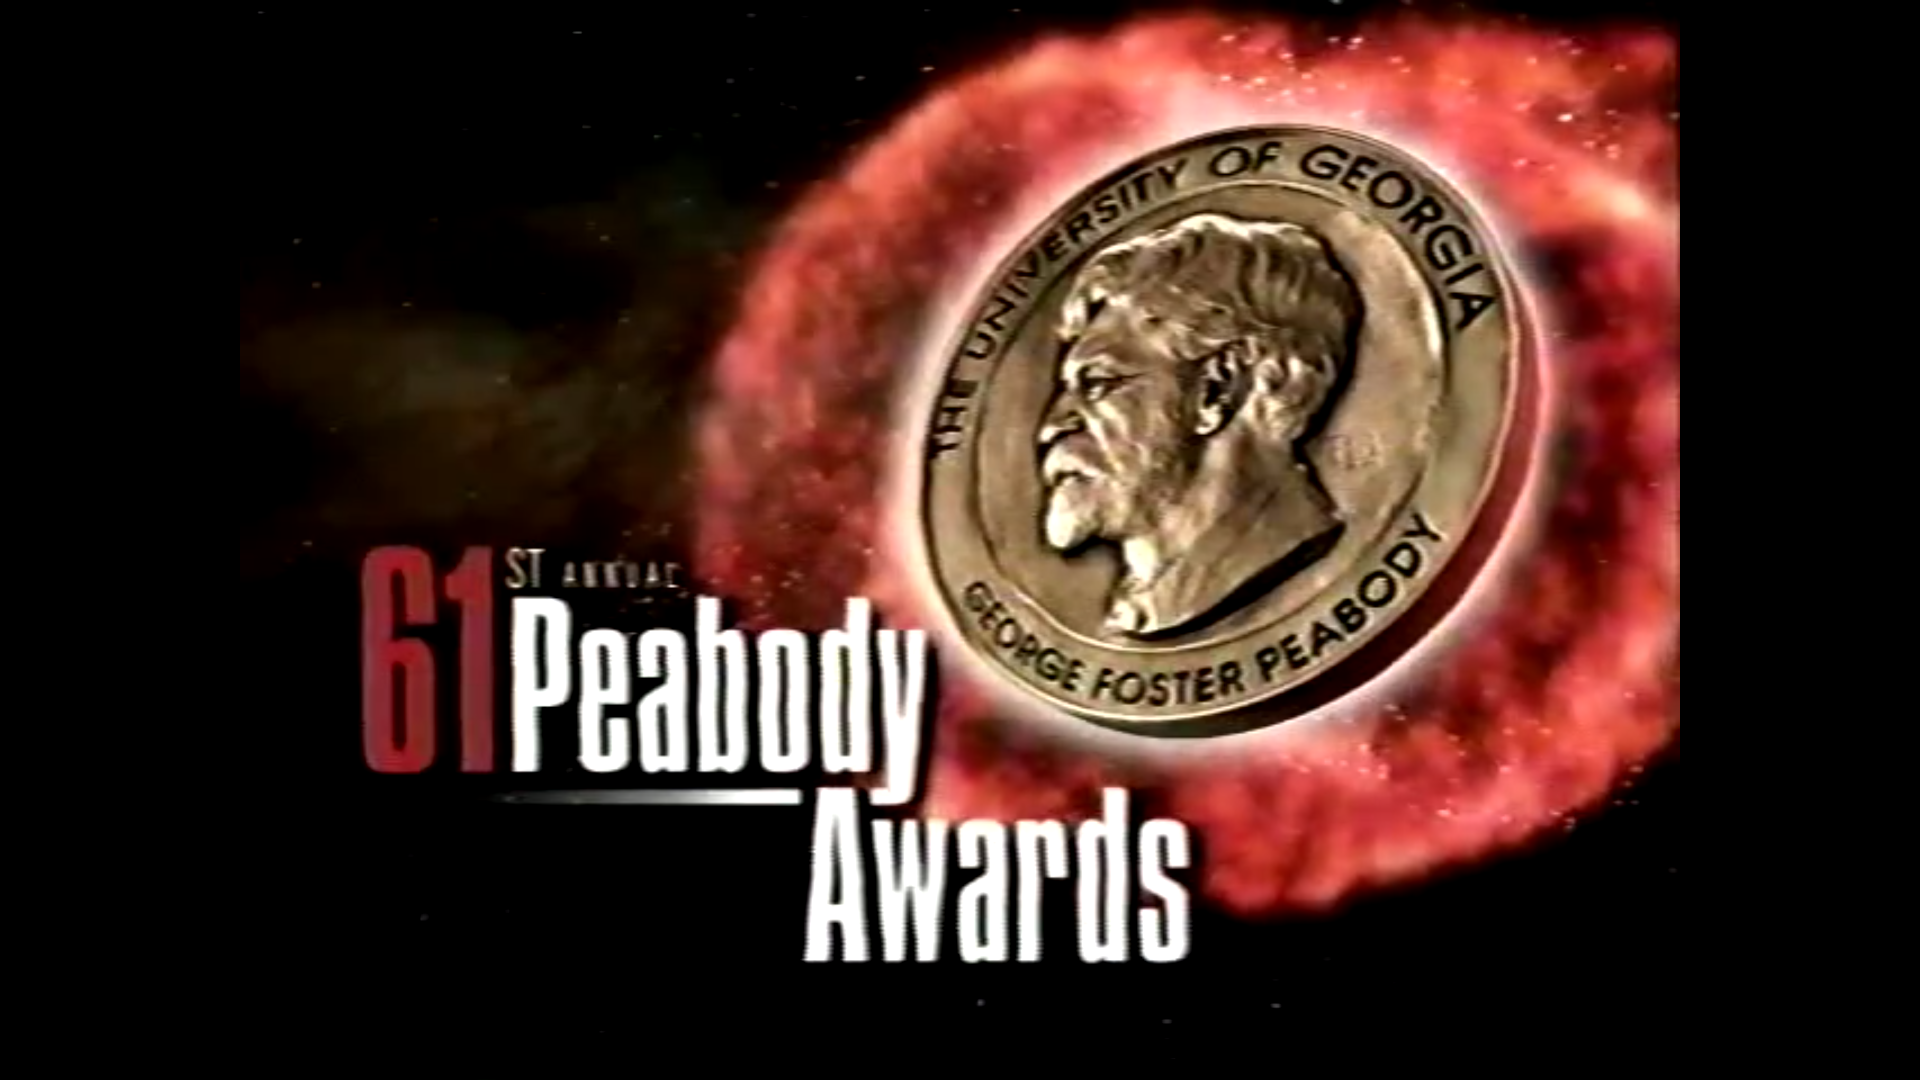 Complete 61st Annual Peabody Awards (May 20, 2002)